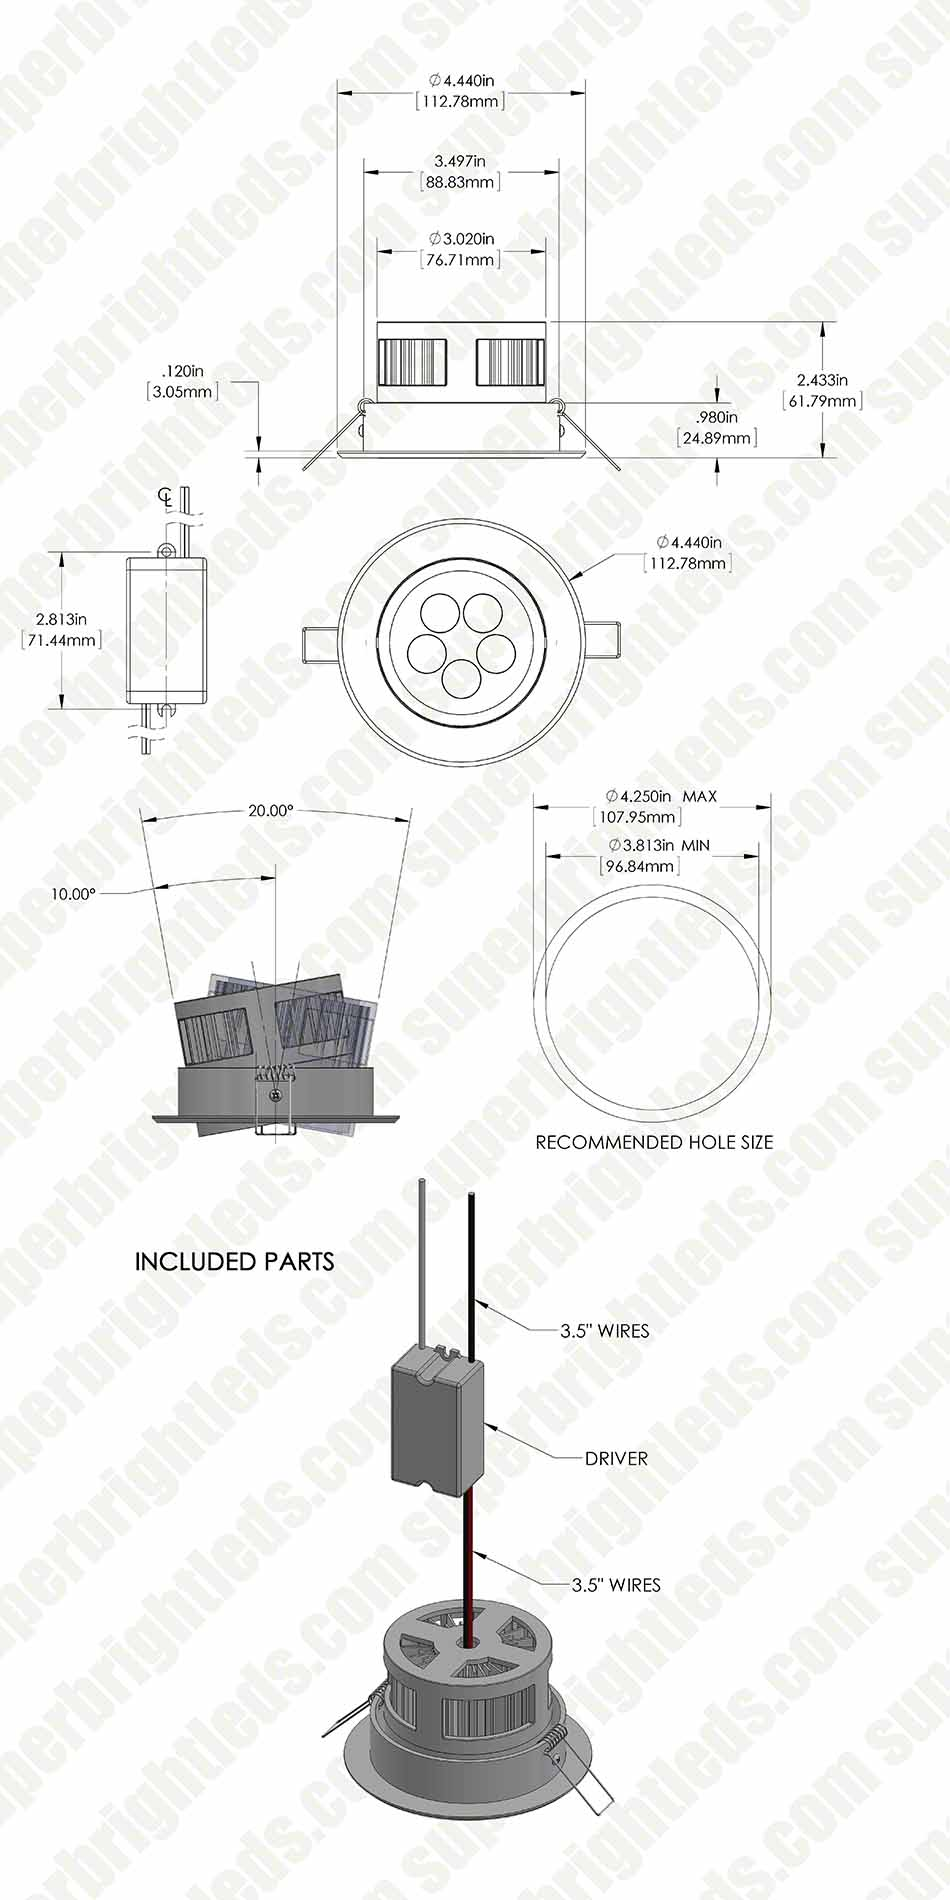 Wiring 2 Flood Lights Diagram And Engine Together With Led Recessed Lighting Truma Boiler Besides Scion Switch Spartan Zone 12 2122 By